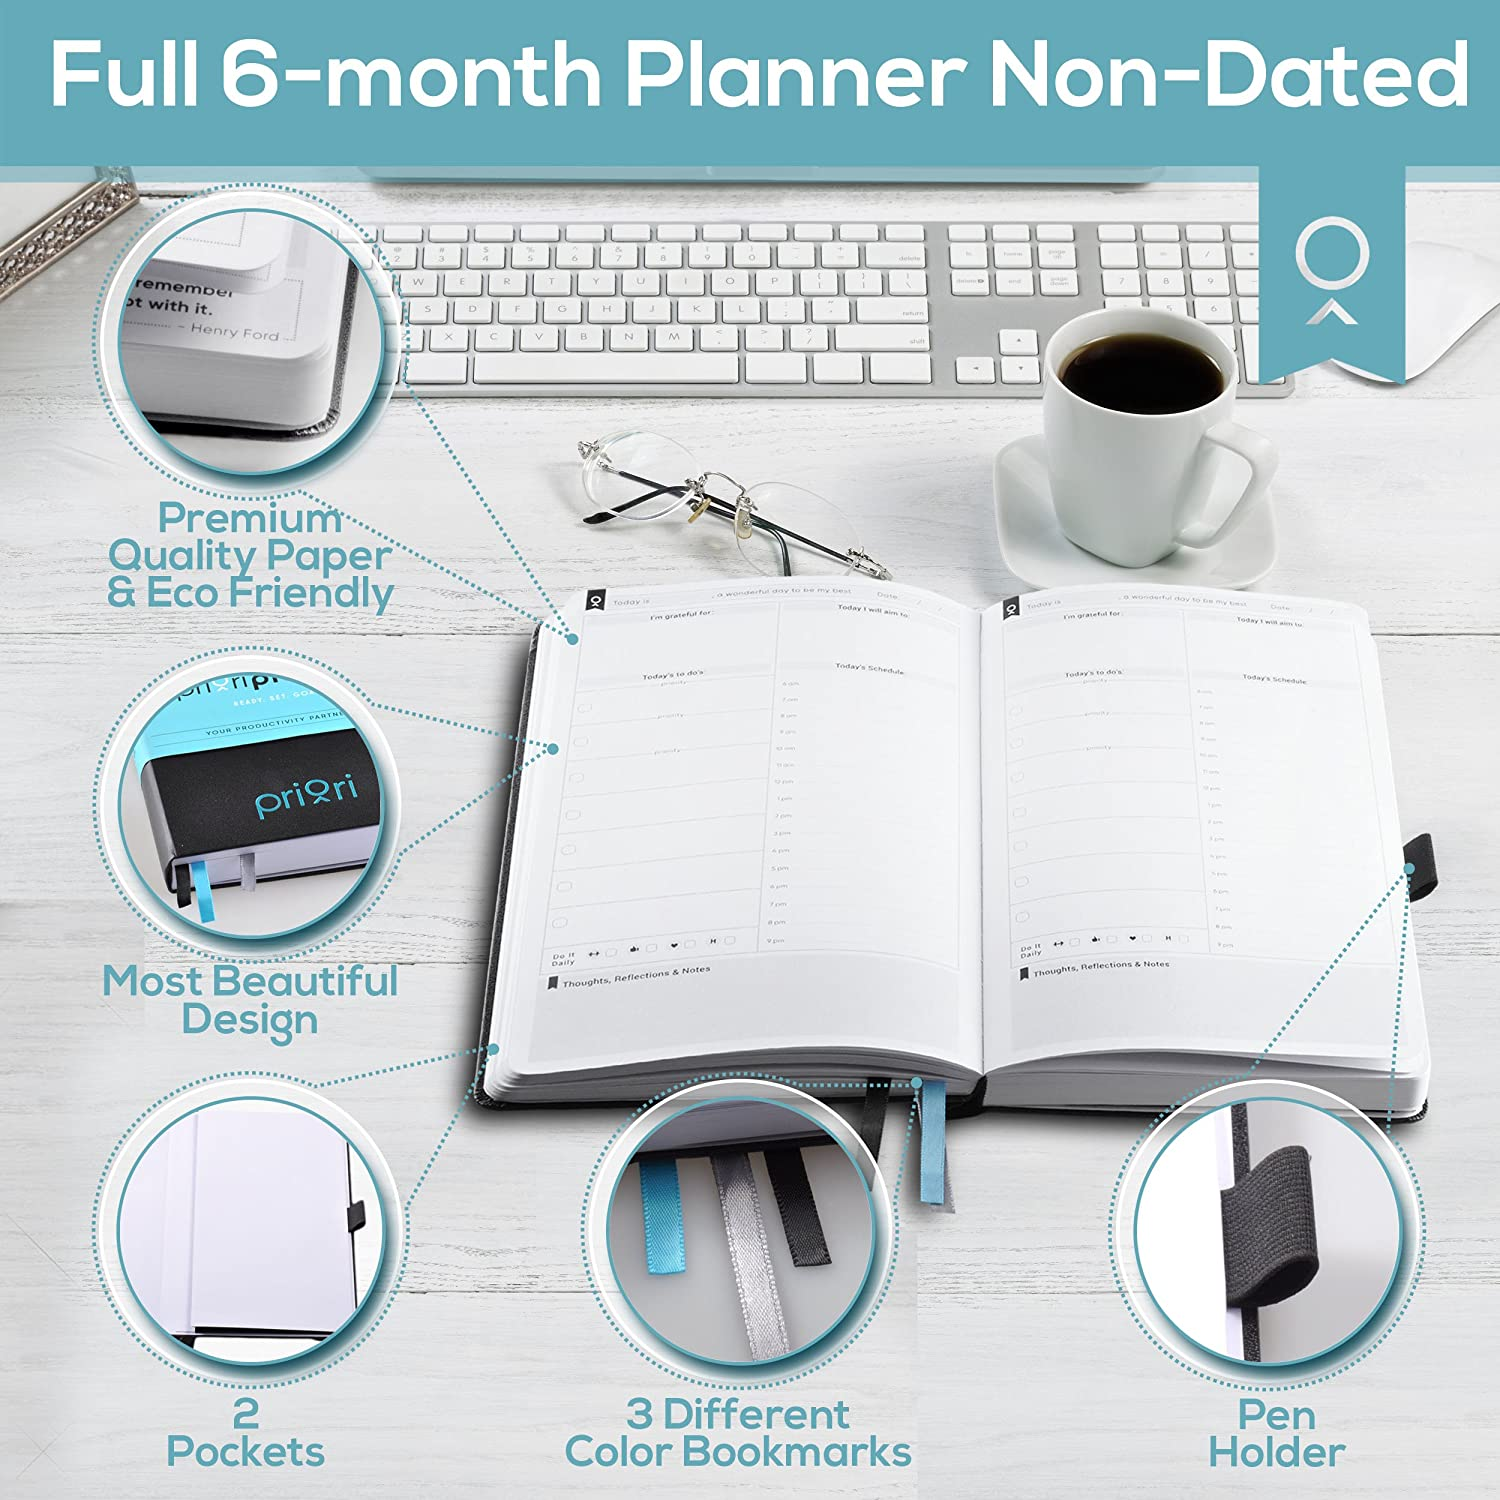 Priori Agenda Planner 2018 | 6 Month Personal Organizer For Productivity  And Happiness | Best Undated Daily Calendar, Weekly, And Monthly Sections  ...